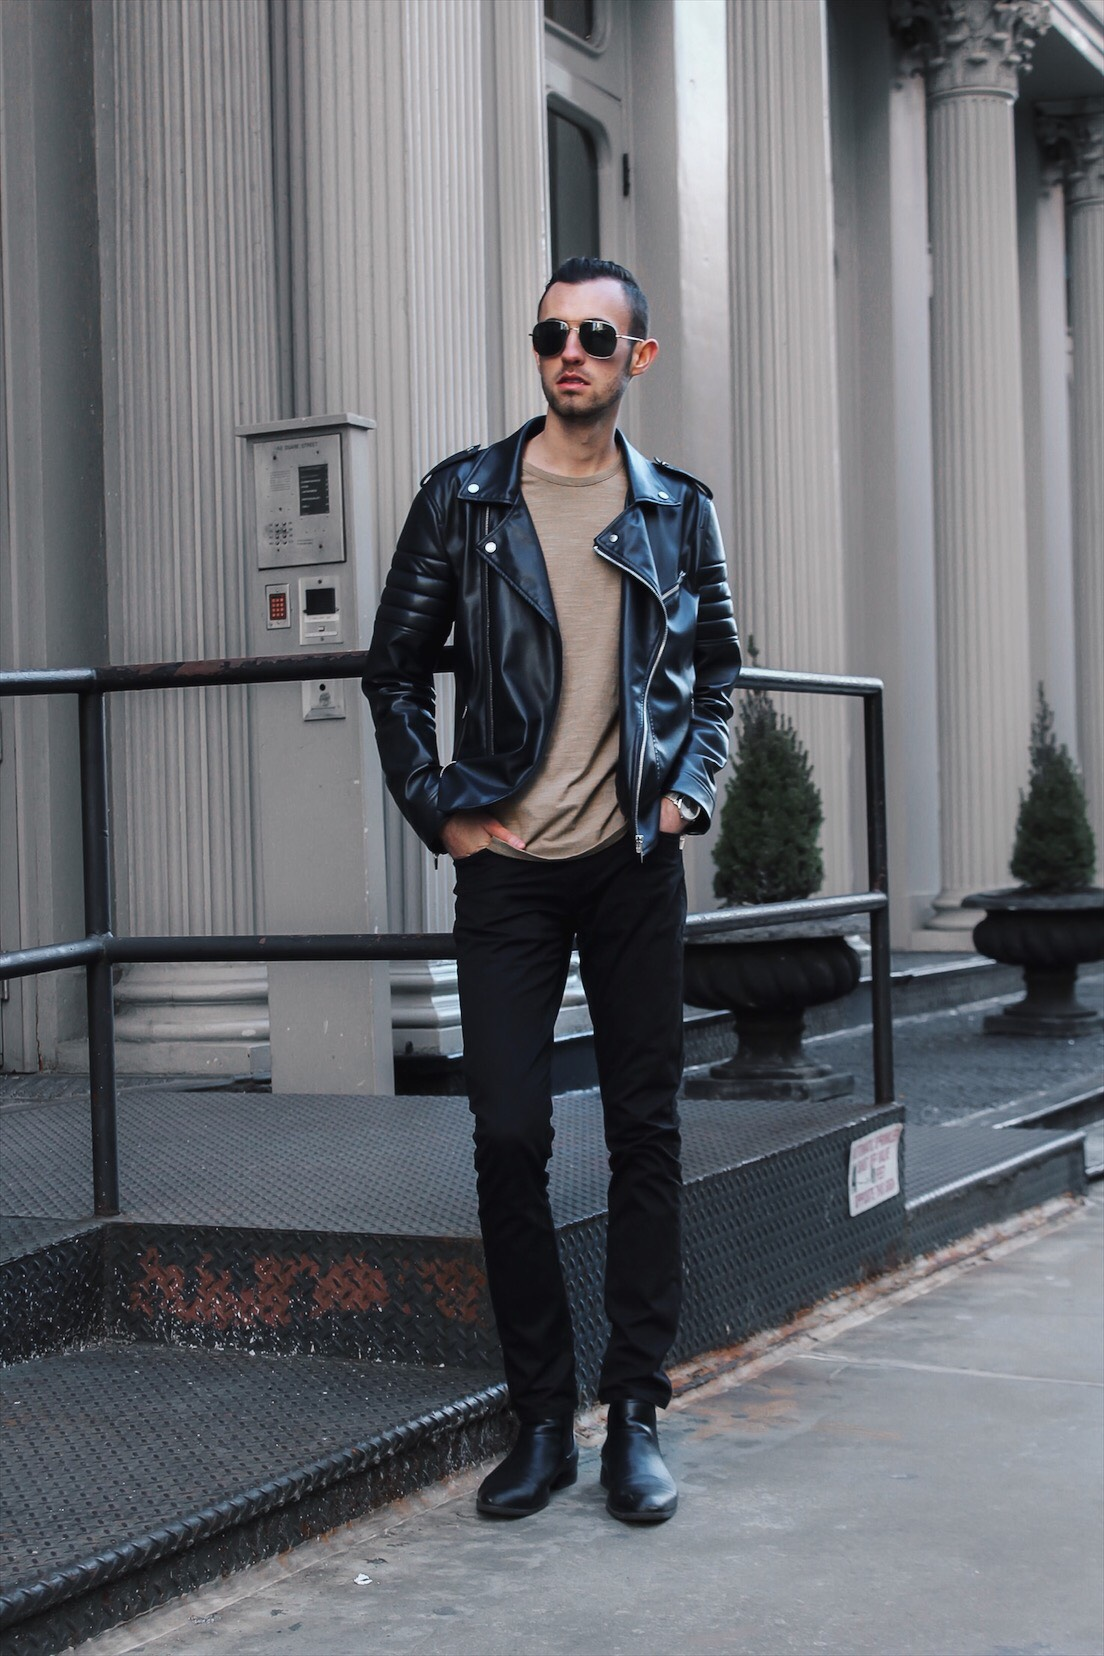 alex at fashion week in leather jacket